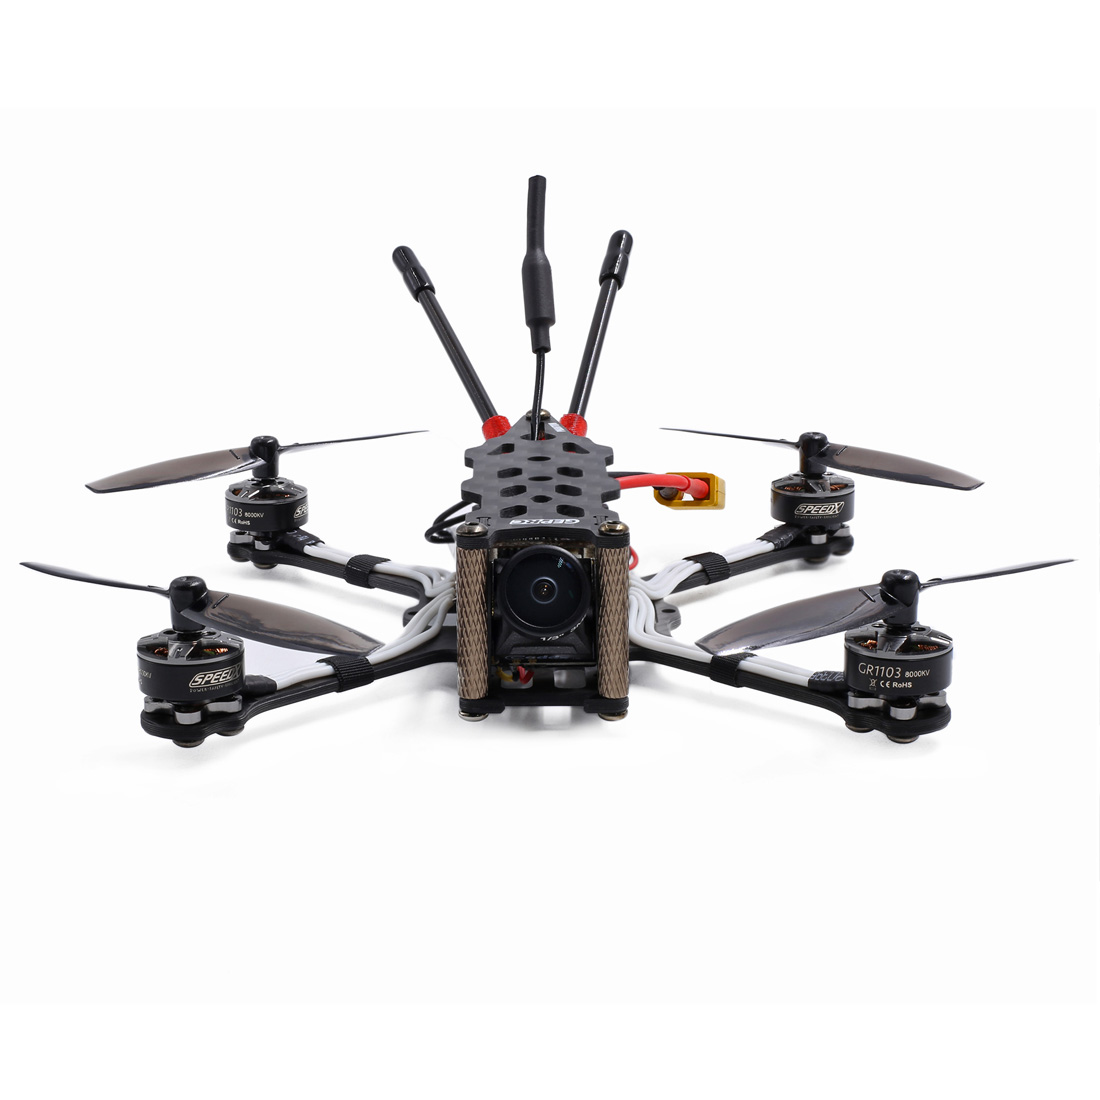 GEPRC PHANTOM Toothpick 125mm 2~3S Micro Drone Freestyle Quadcopter With Frsky XM+ RX GEP-12A-F4 AIO Flight Controller